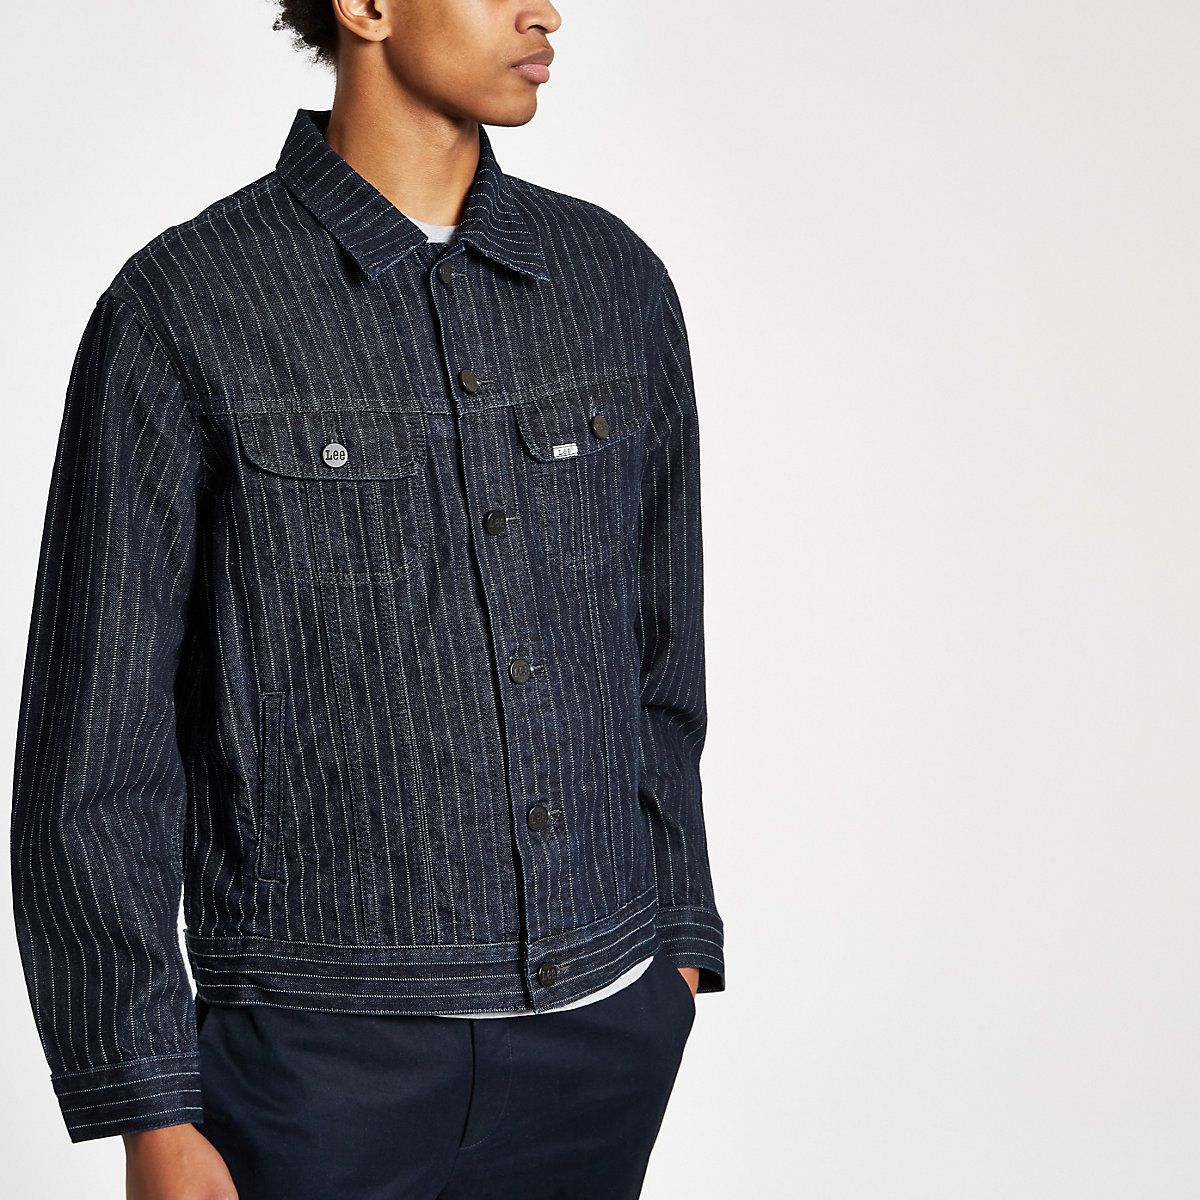 Lee navy stripe denim jacket